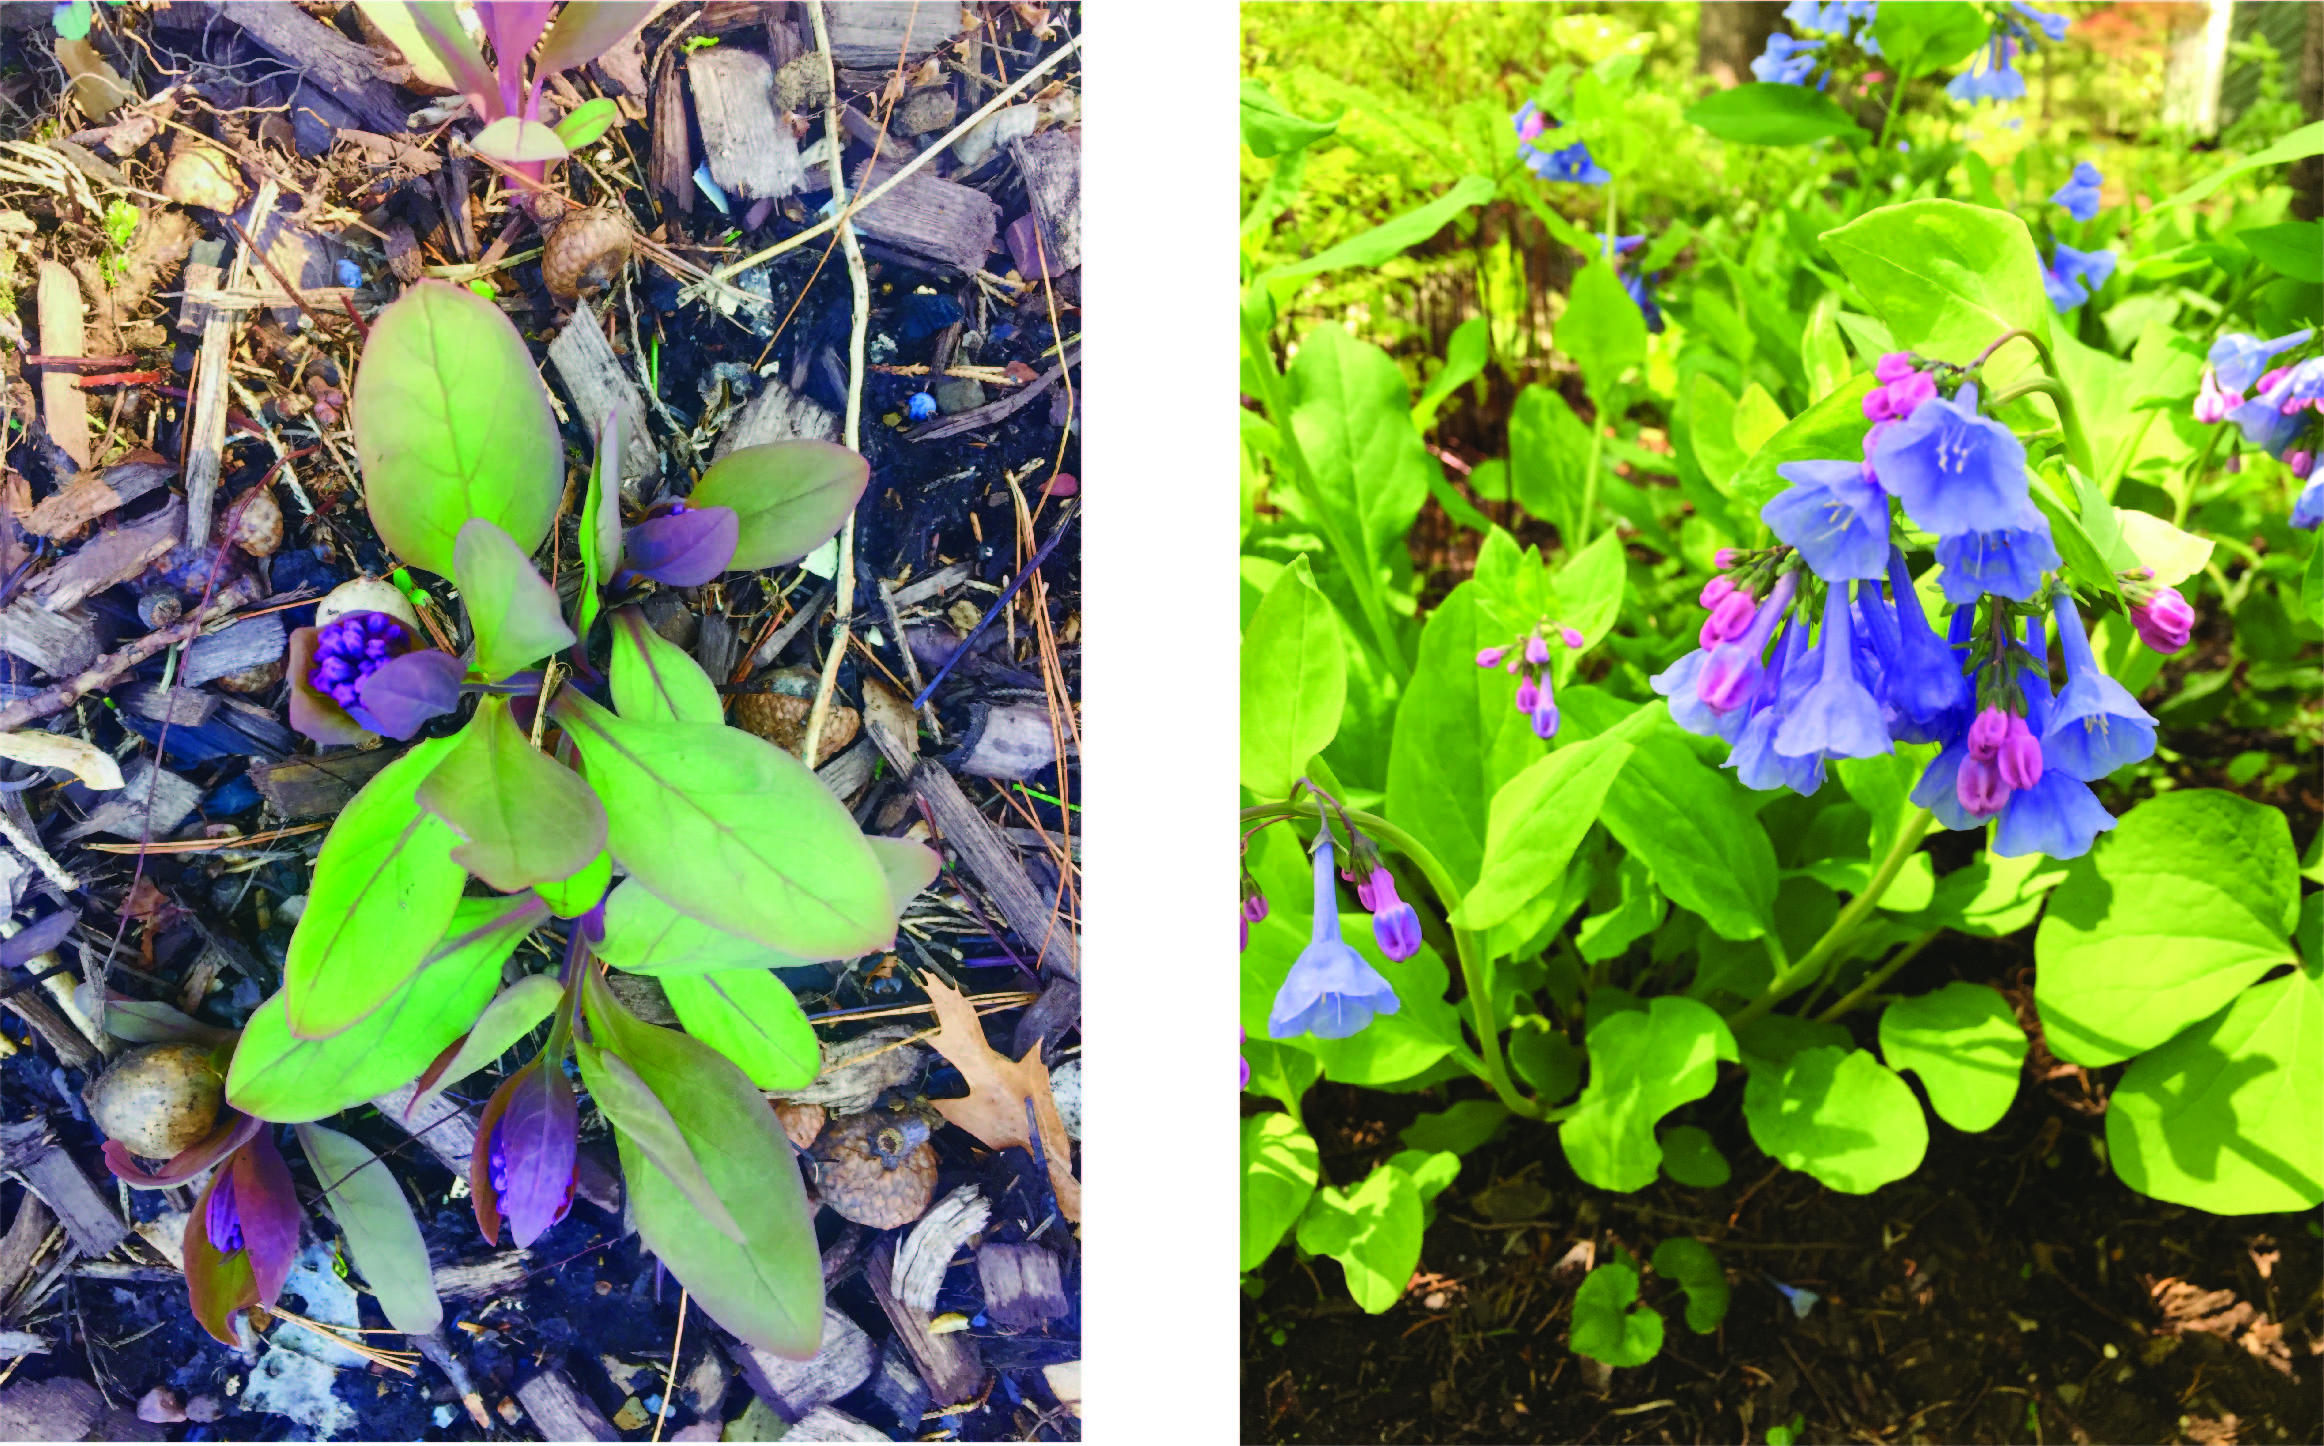 Virginia bluebells before and during flowering